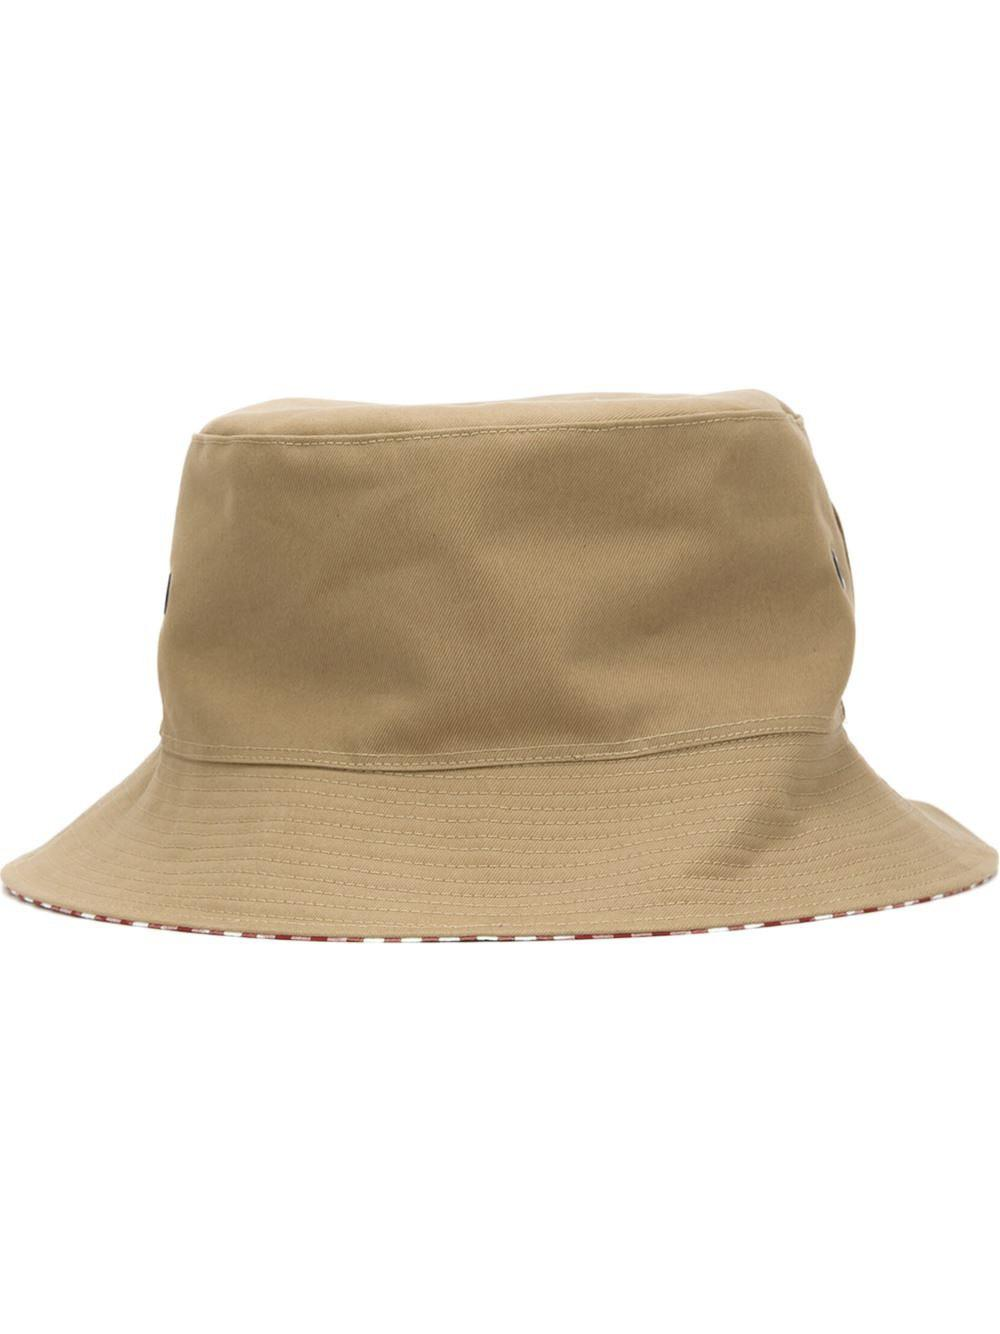 73db8748bc6b8 Lyst - Maison Michel Gingham Bucket Hat in Red for Men